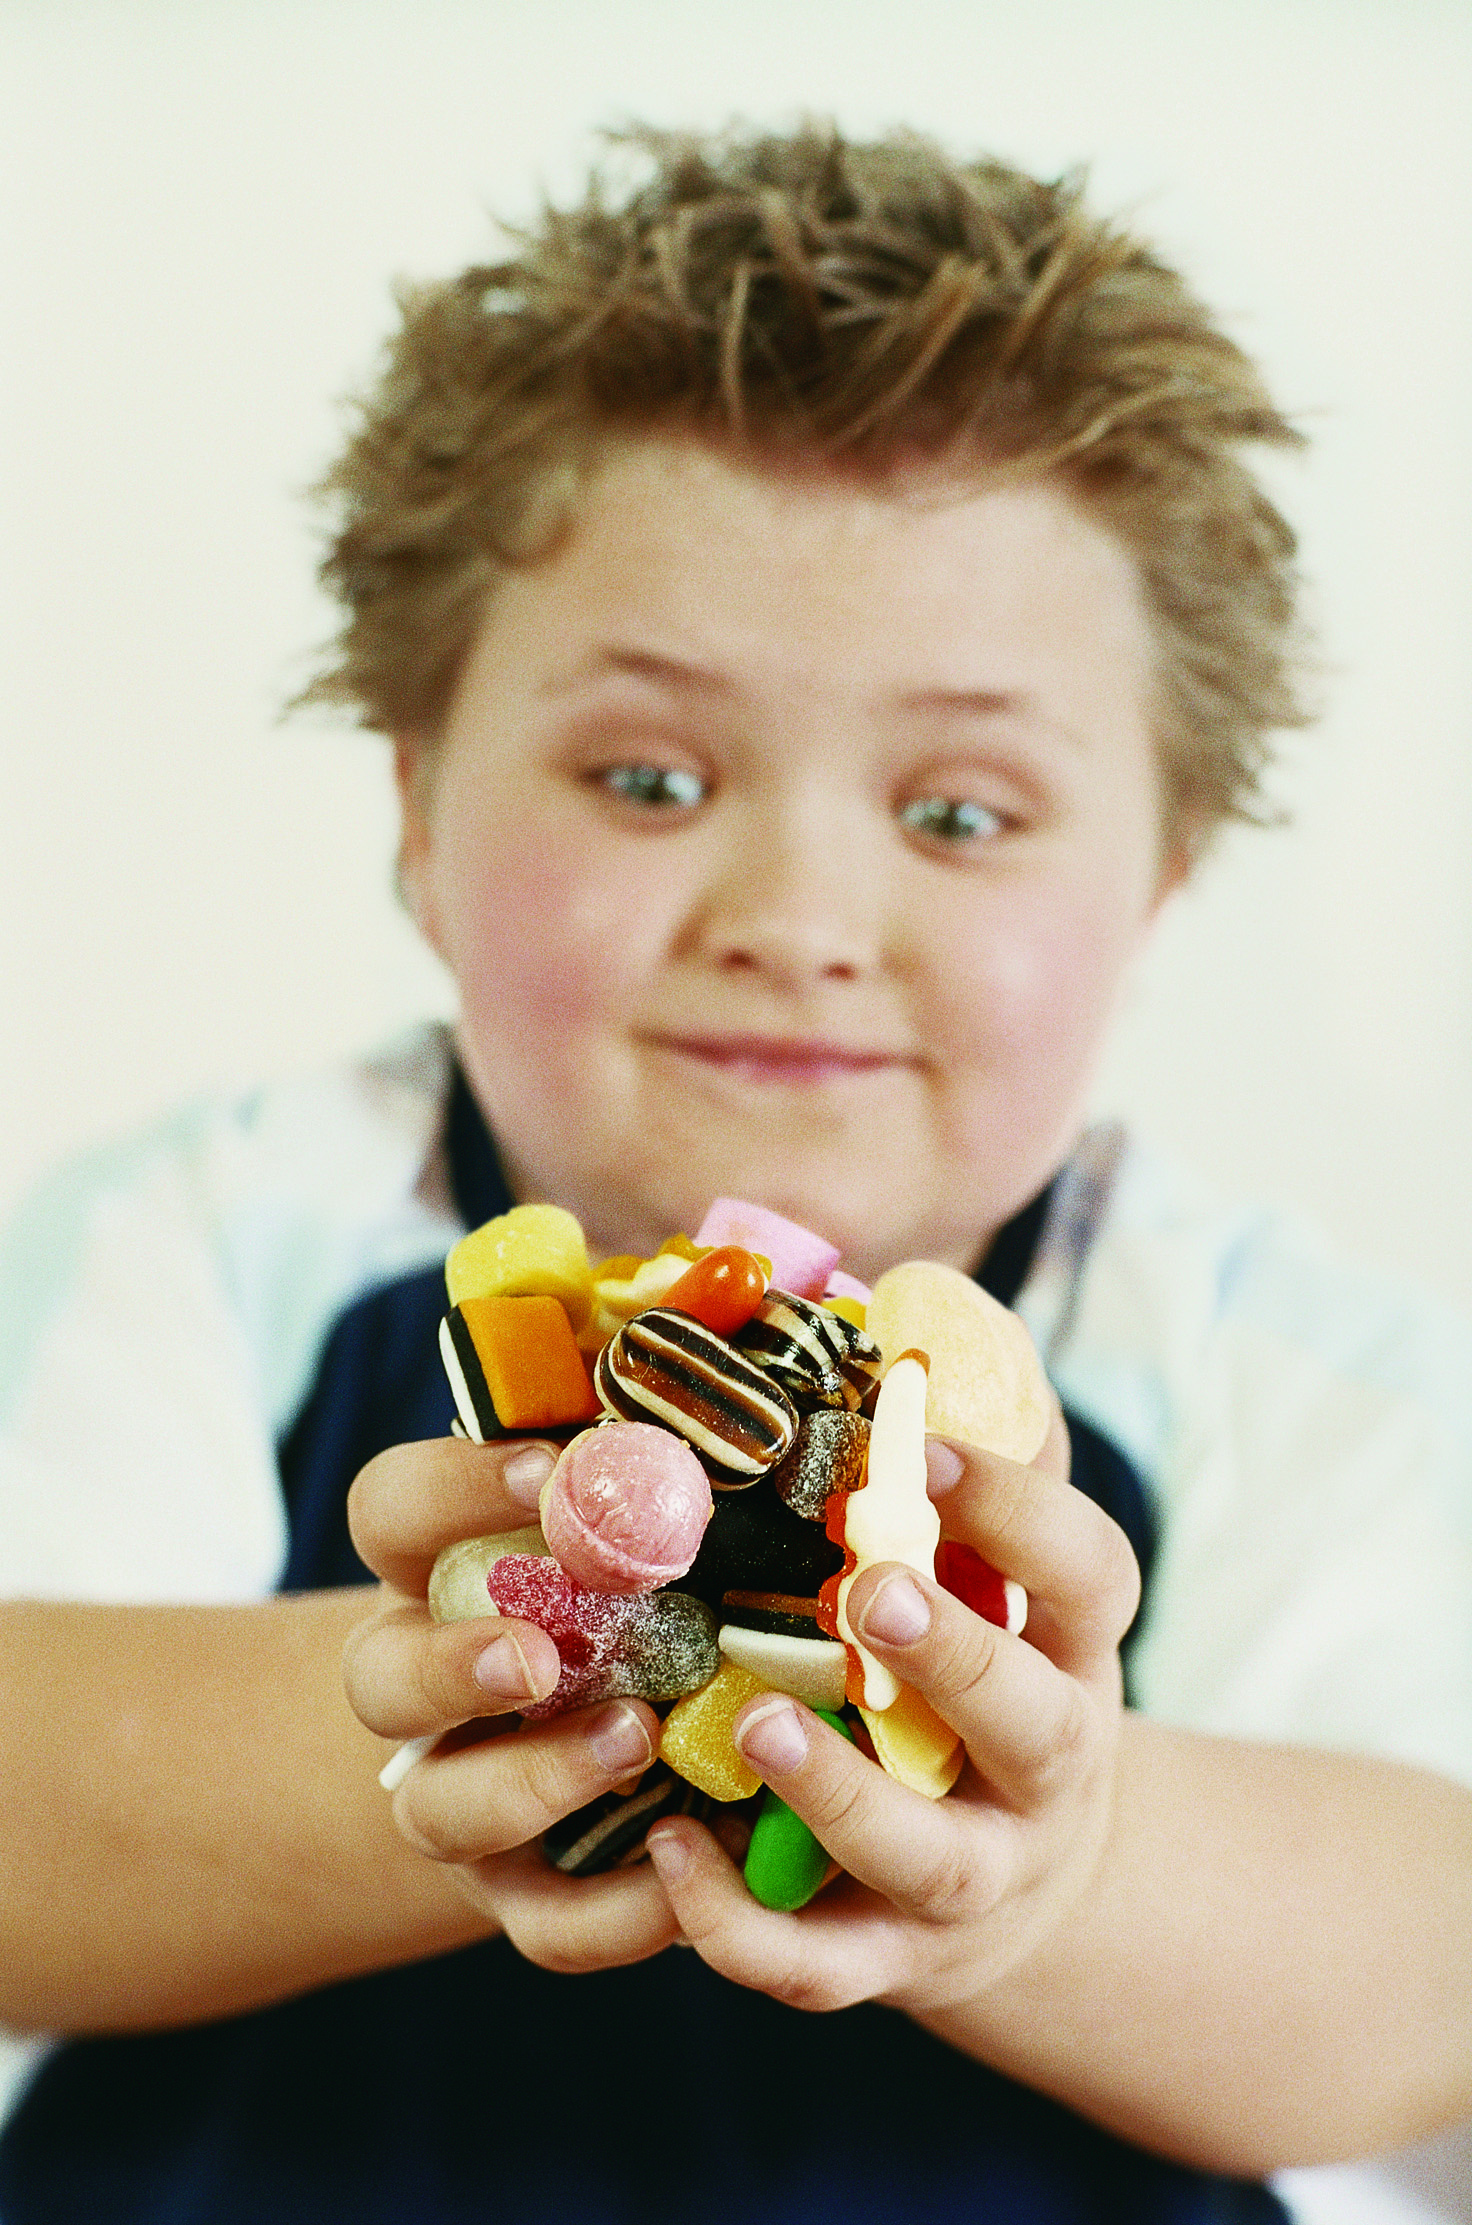 Kids are getting way more sugar than they should.